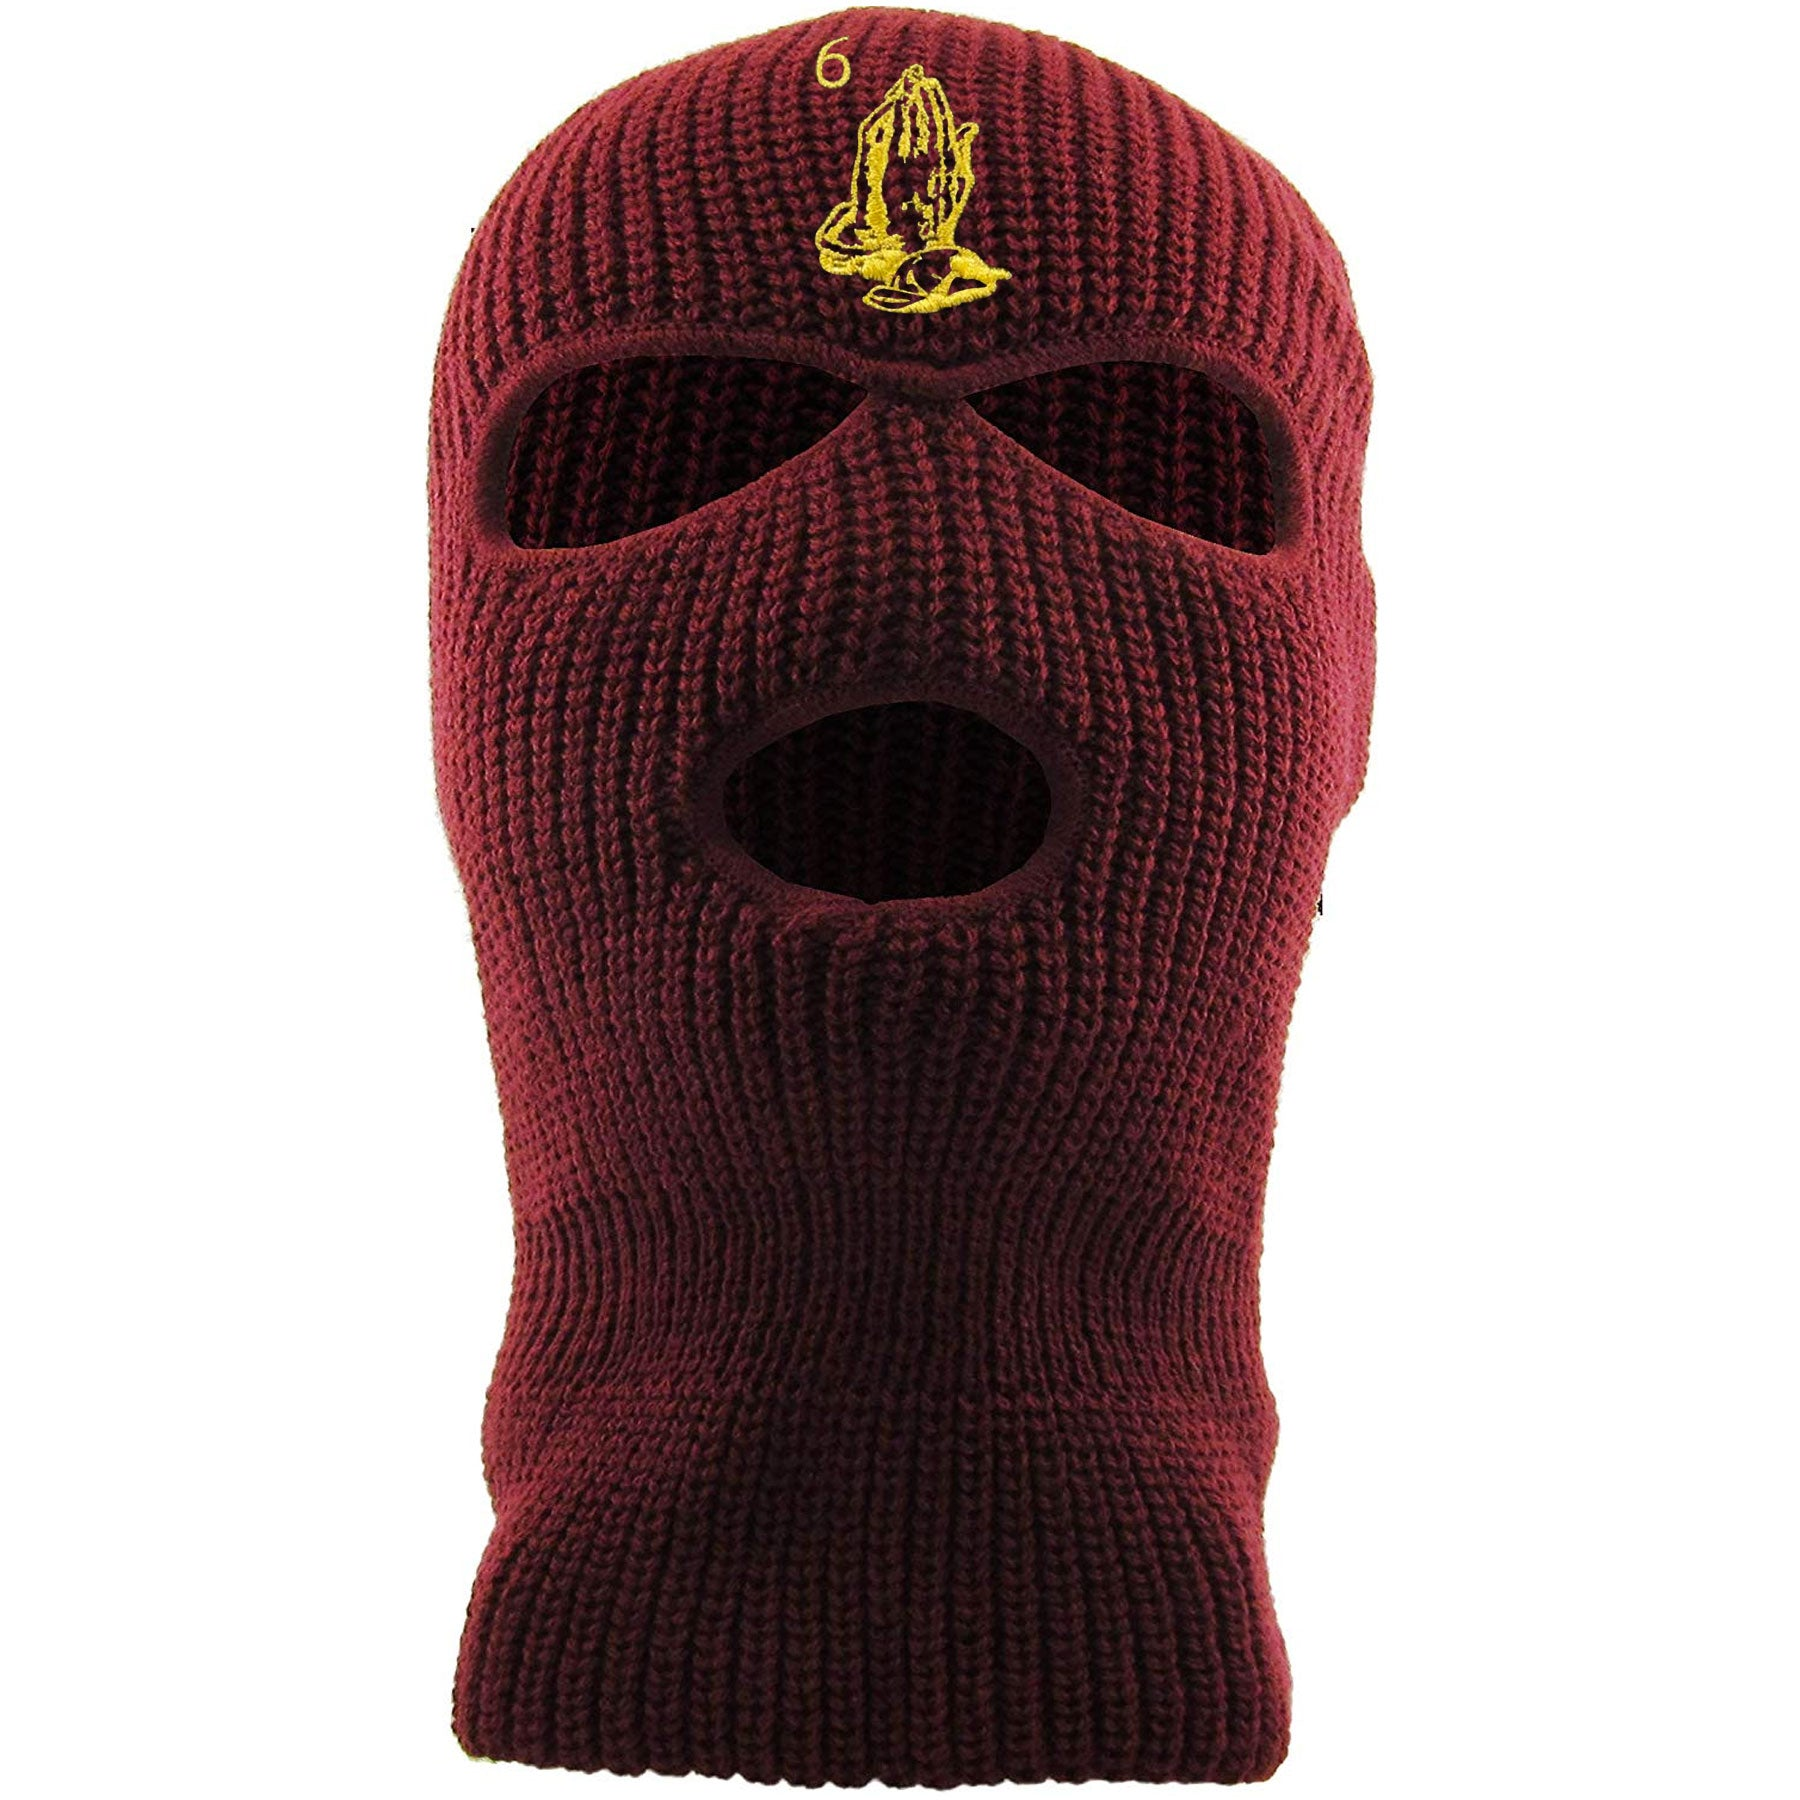 9b0ae9a081a2d Embroidered on the forehead of the maroon OVO drake ski mask is the 6 god  logo